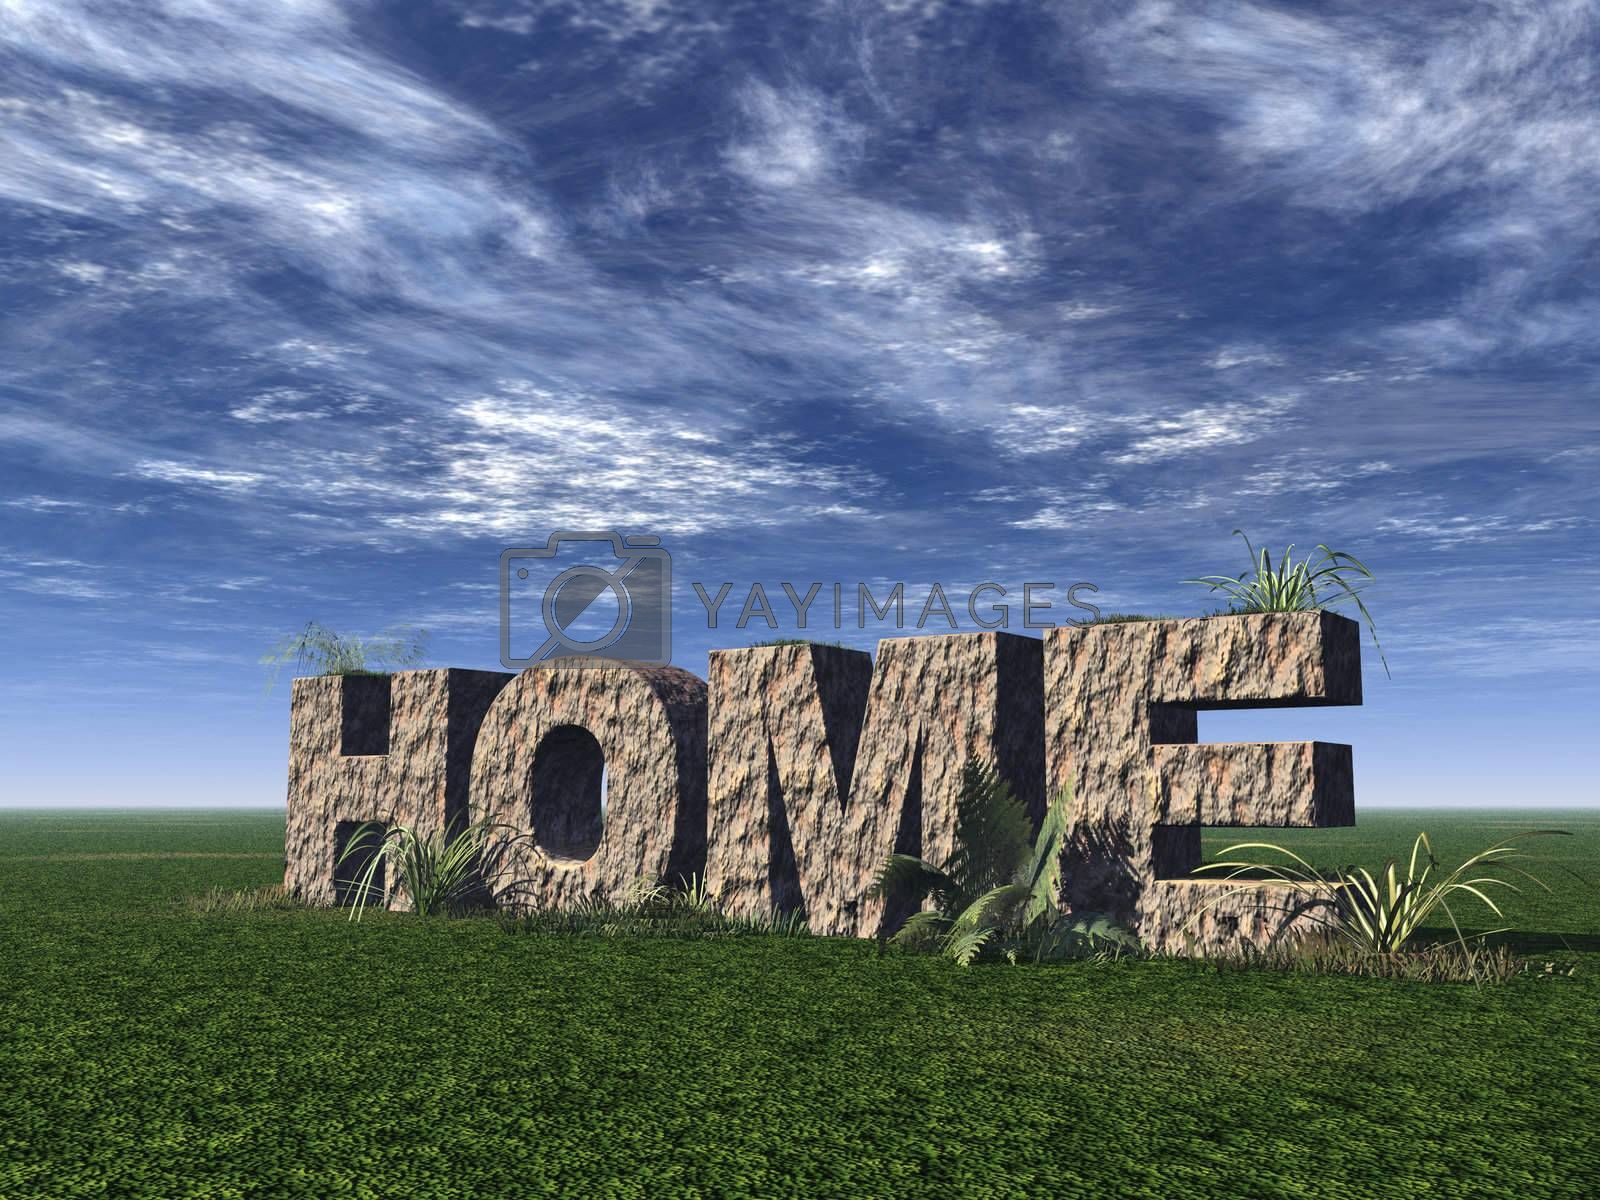 Royalty free image of home by drizzd